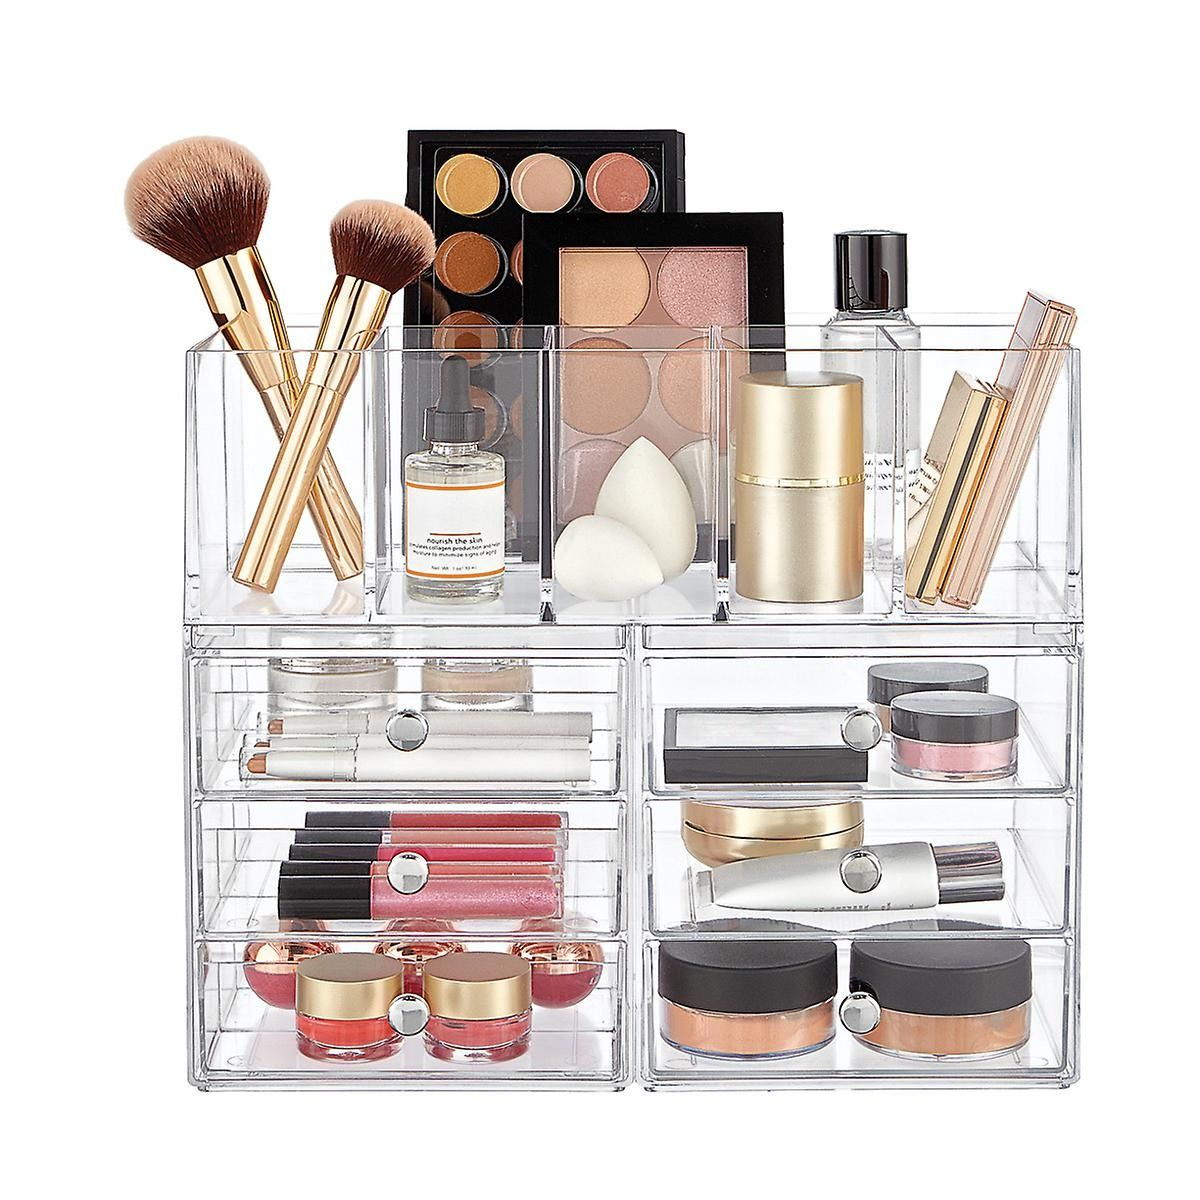 May your makeup storage be as customized as your skincare